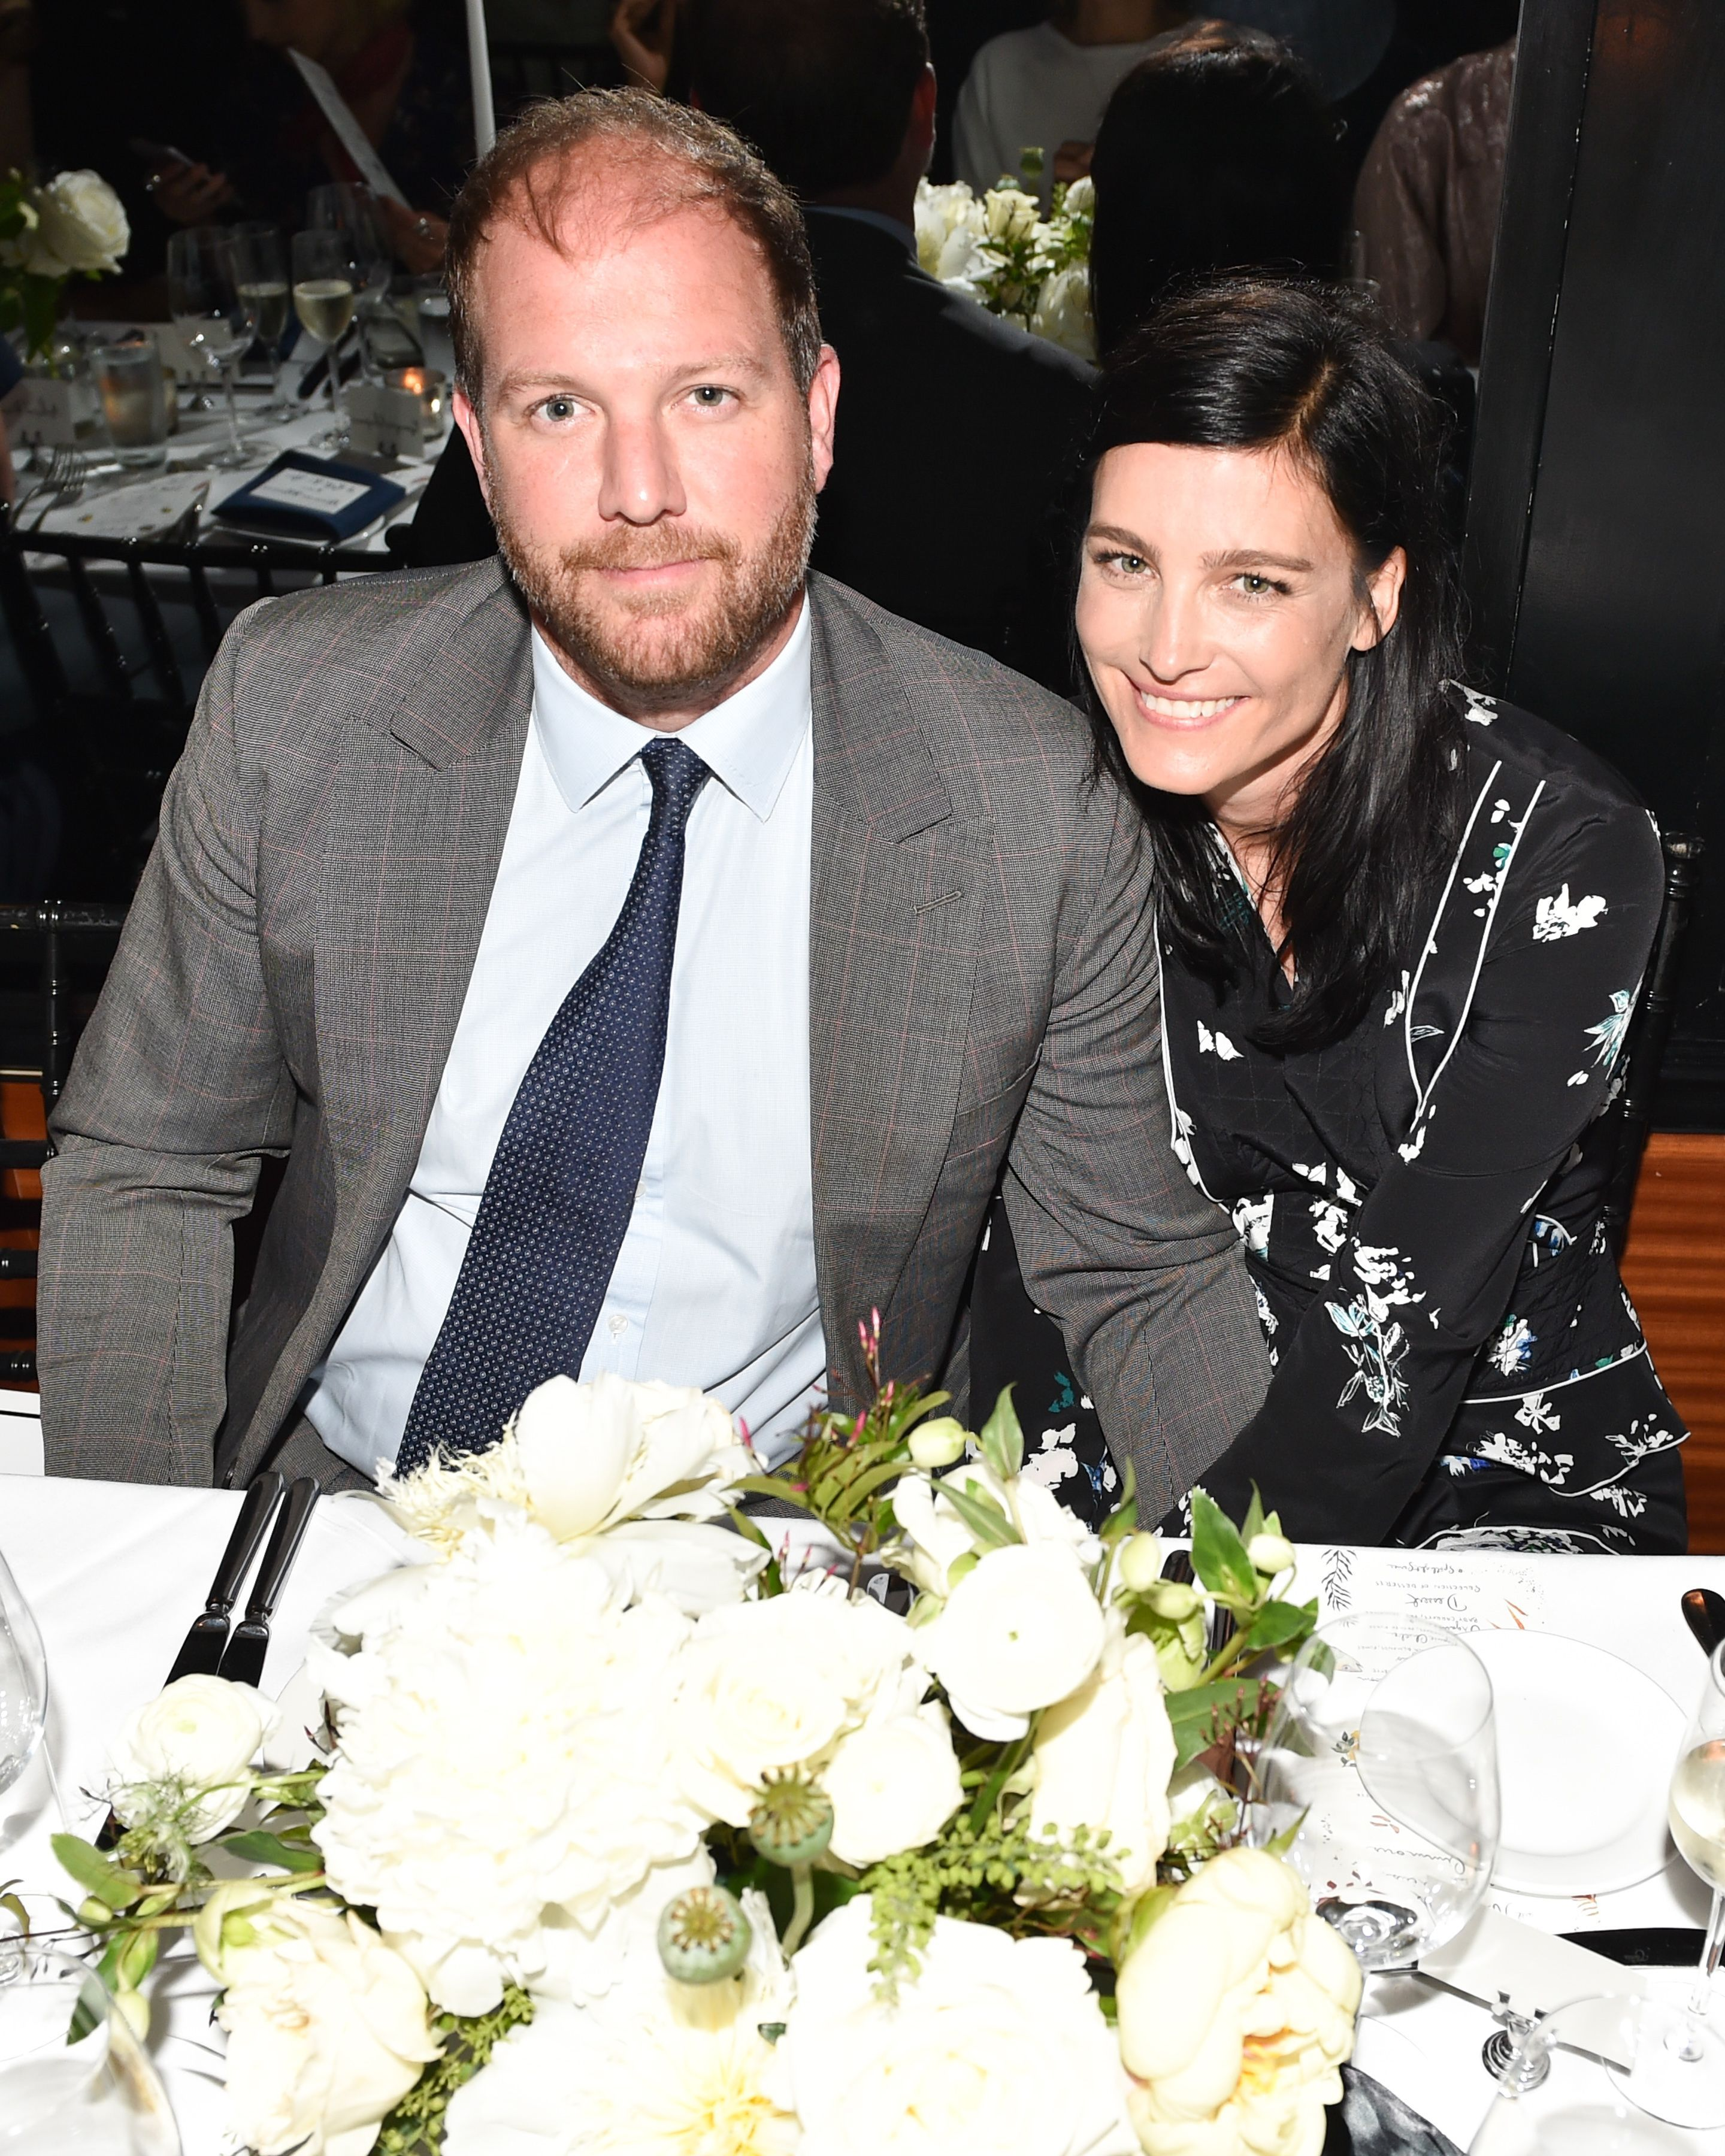 Topper Mortimer married shoe designer Tabitha Simmons in a star-studded yet understated wedding on New York City's Upper East Side in June. The couple had welcomed daughter, Violet Elizabeth , in January and have been together since 2014.